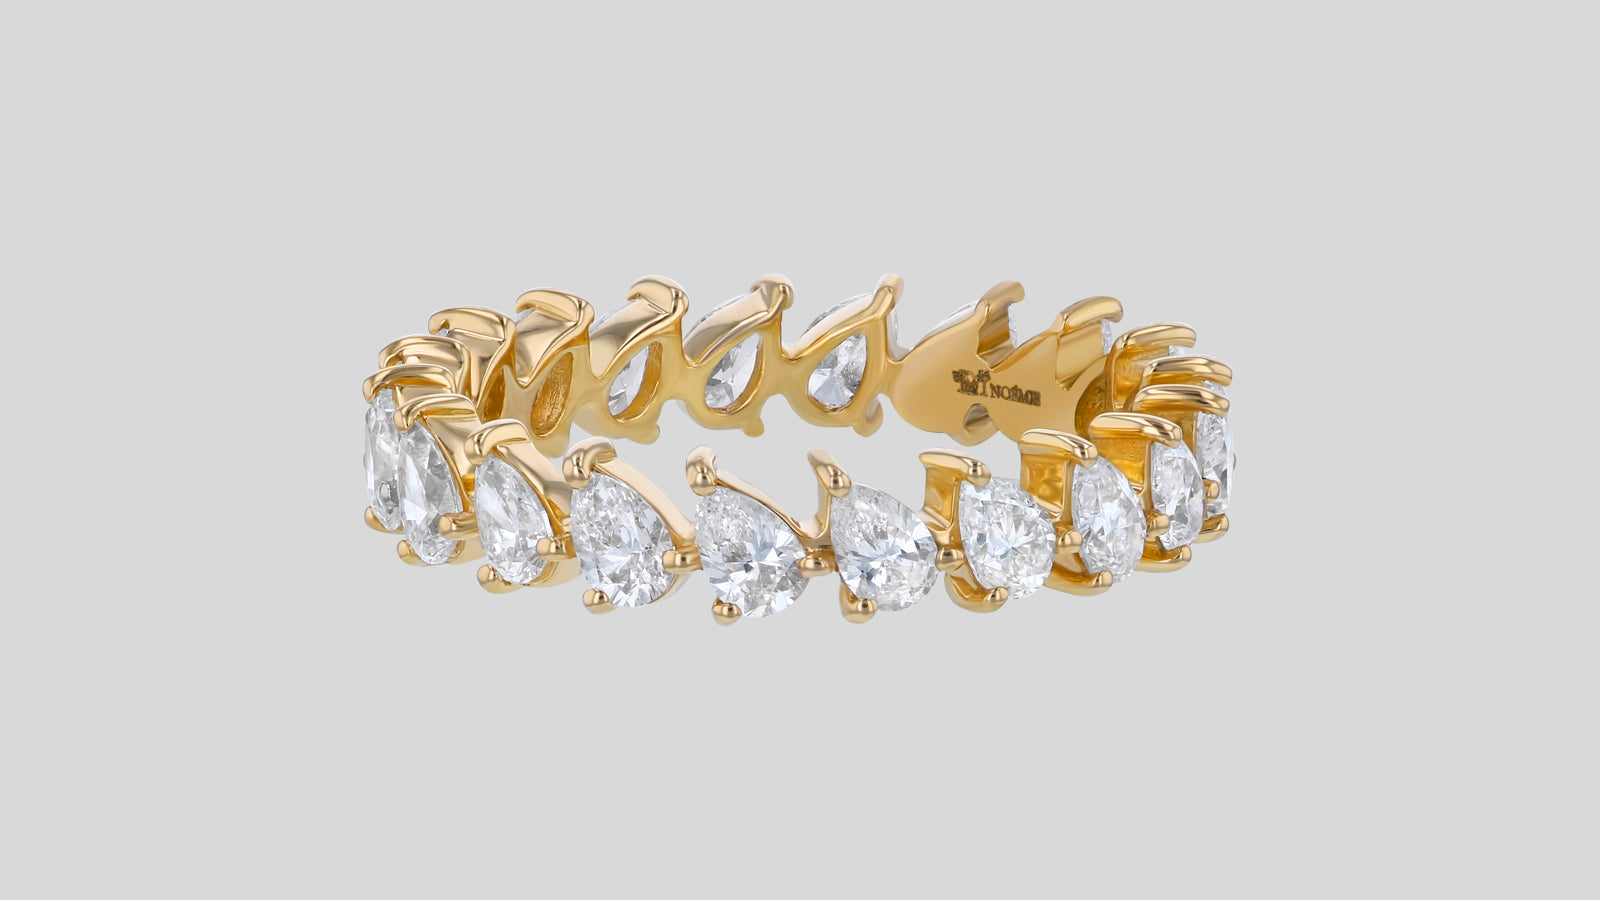 //cdn.shopify.com/s/files/1/1043/0216/files/pear-gold-rose-white-platinum-eternity-2_1600x.jpg?v=3259091945617449497